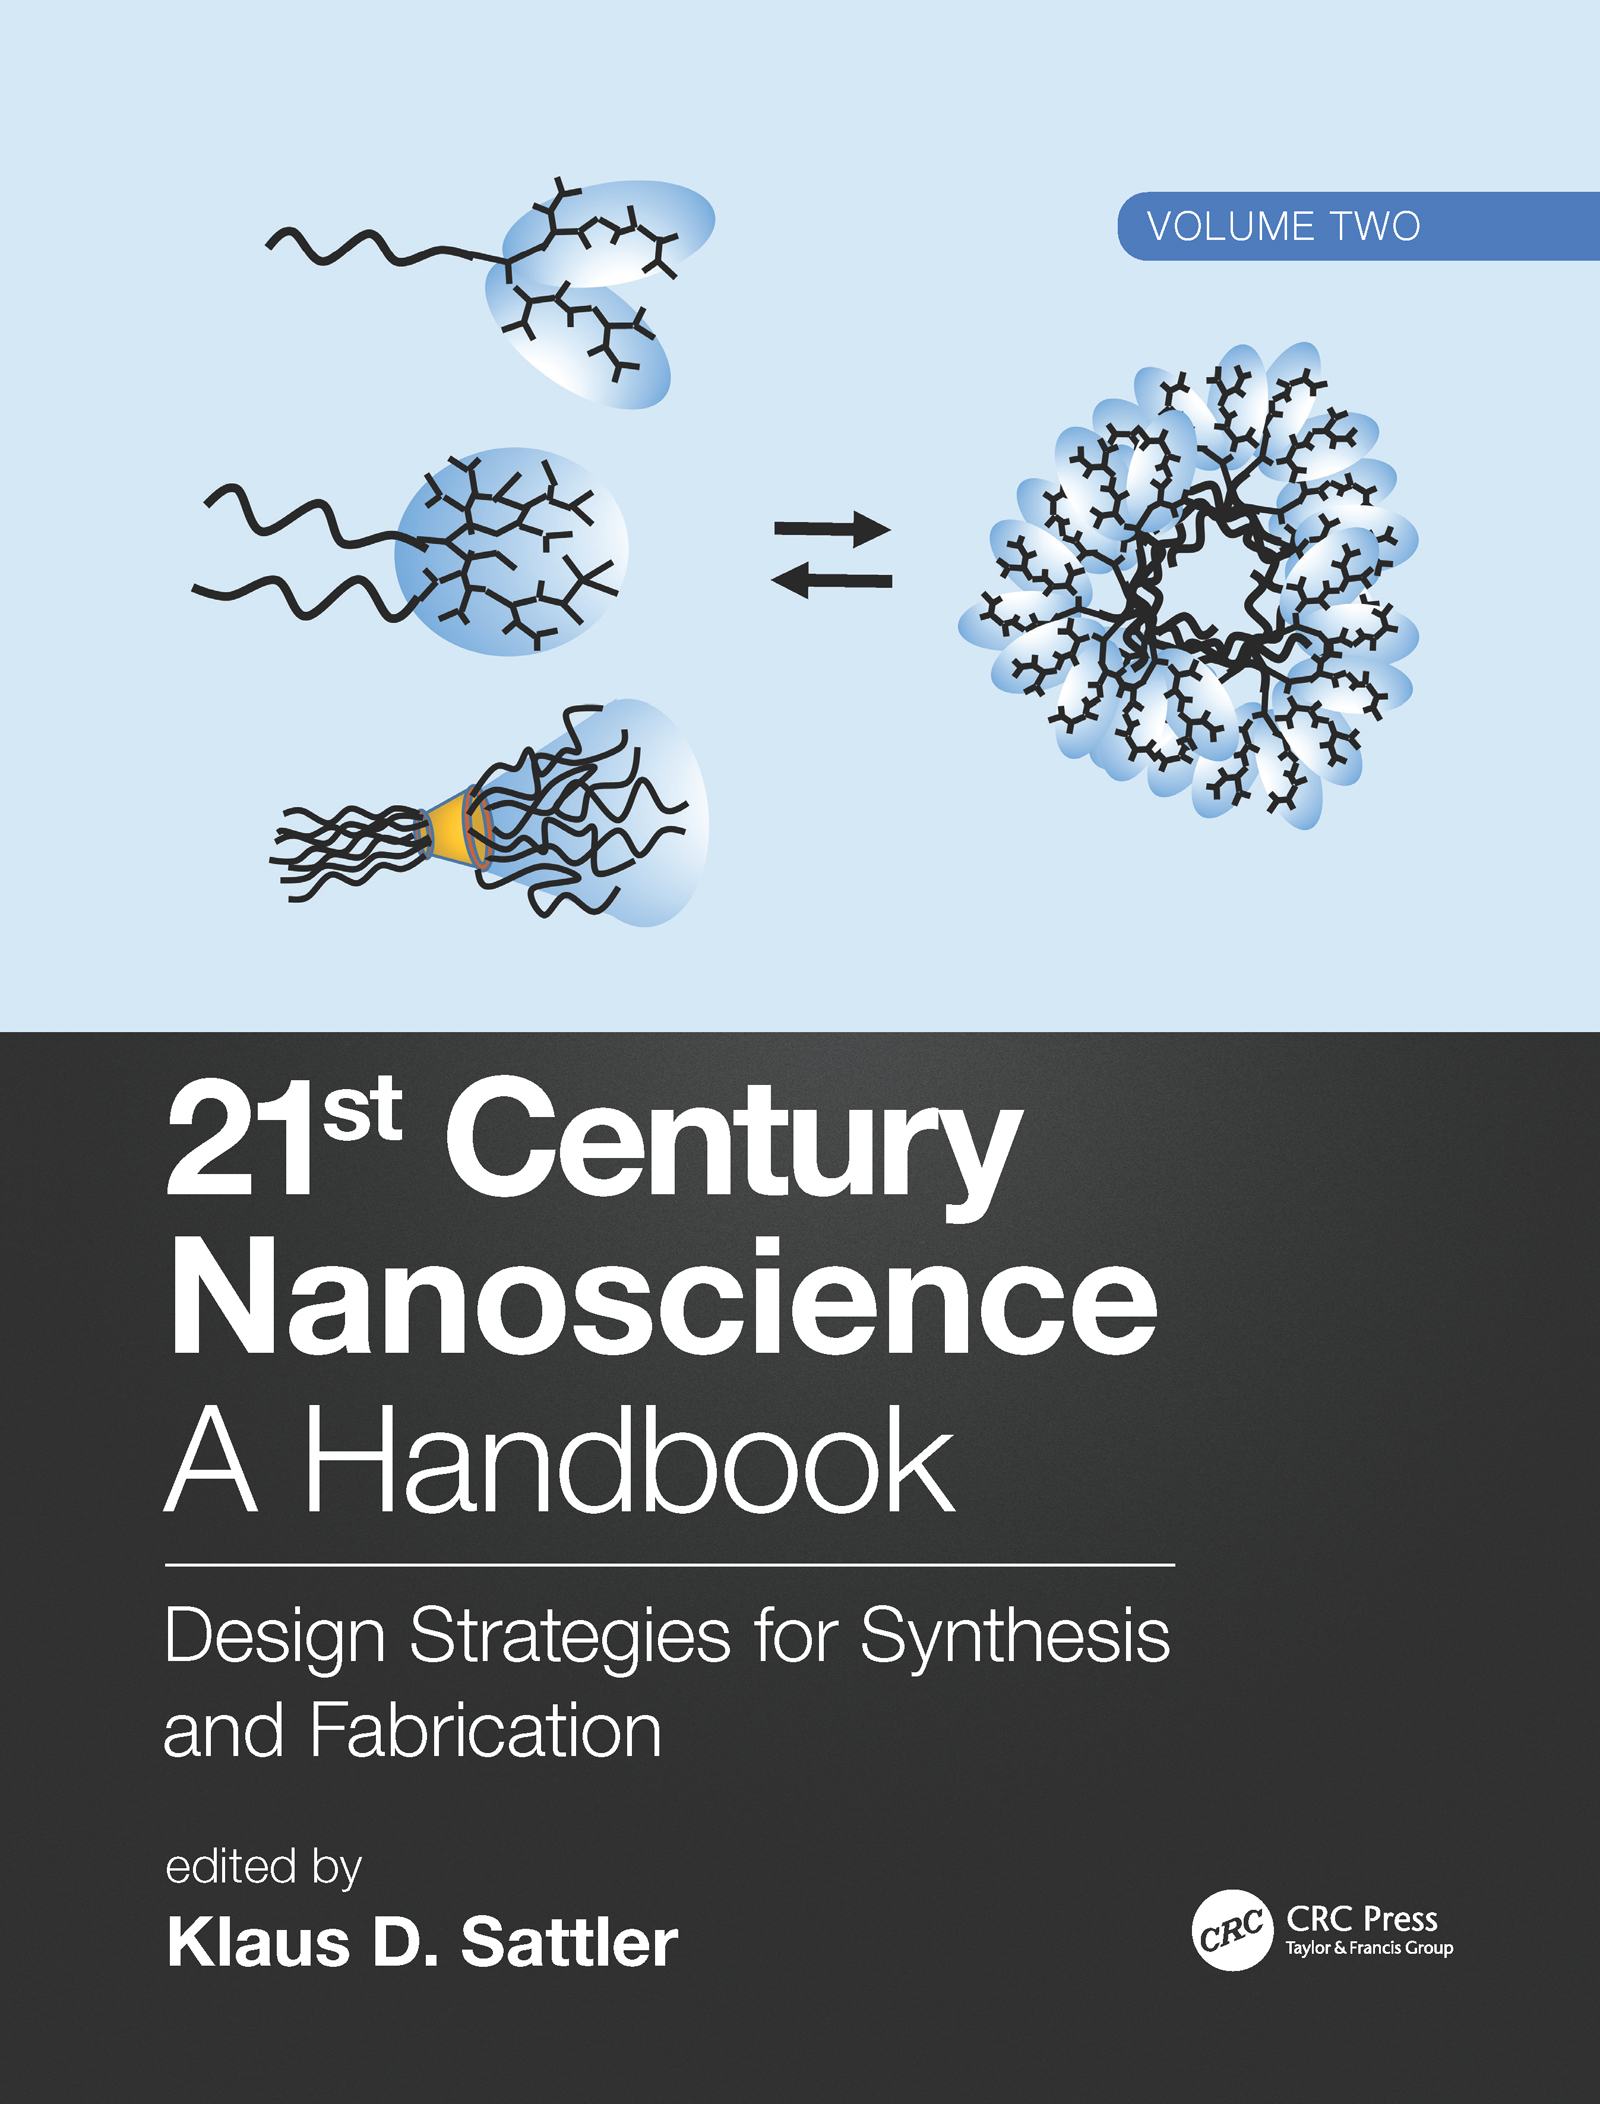 21st Century Nanoscience – A Handbook: Design Strategies for Synthesis and Fabrication (Volume Two) book cover